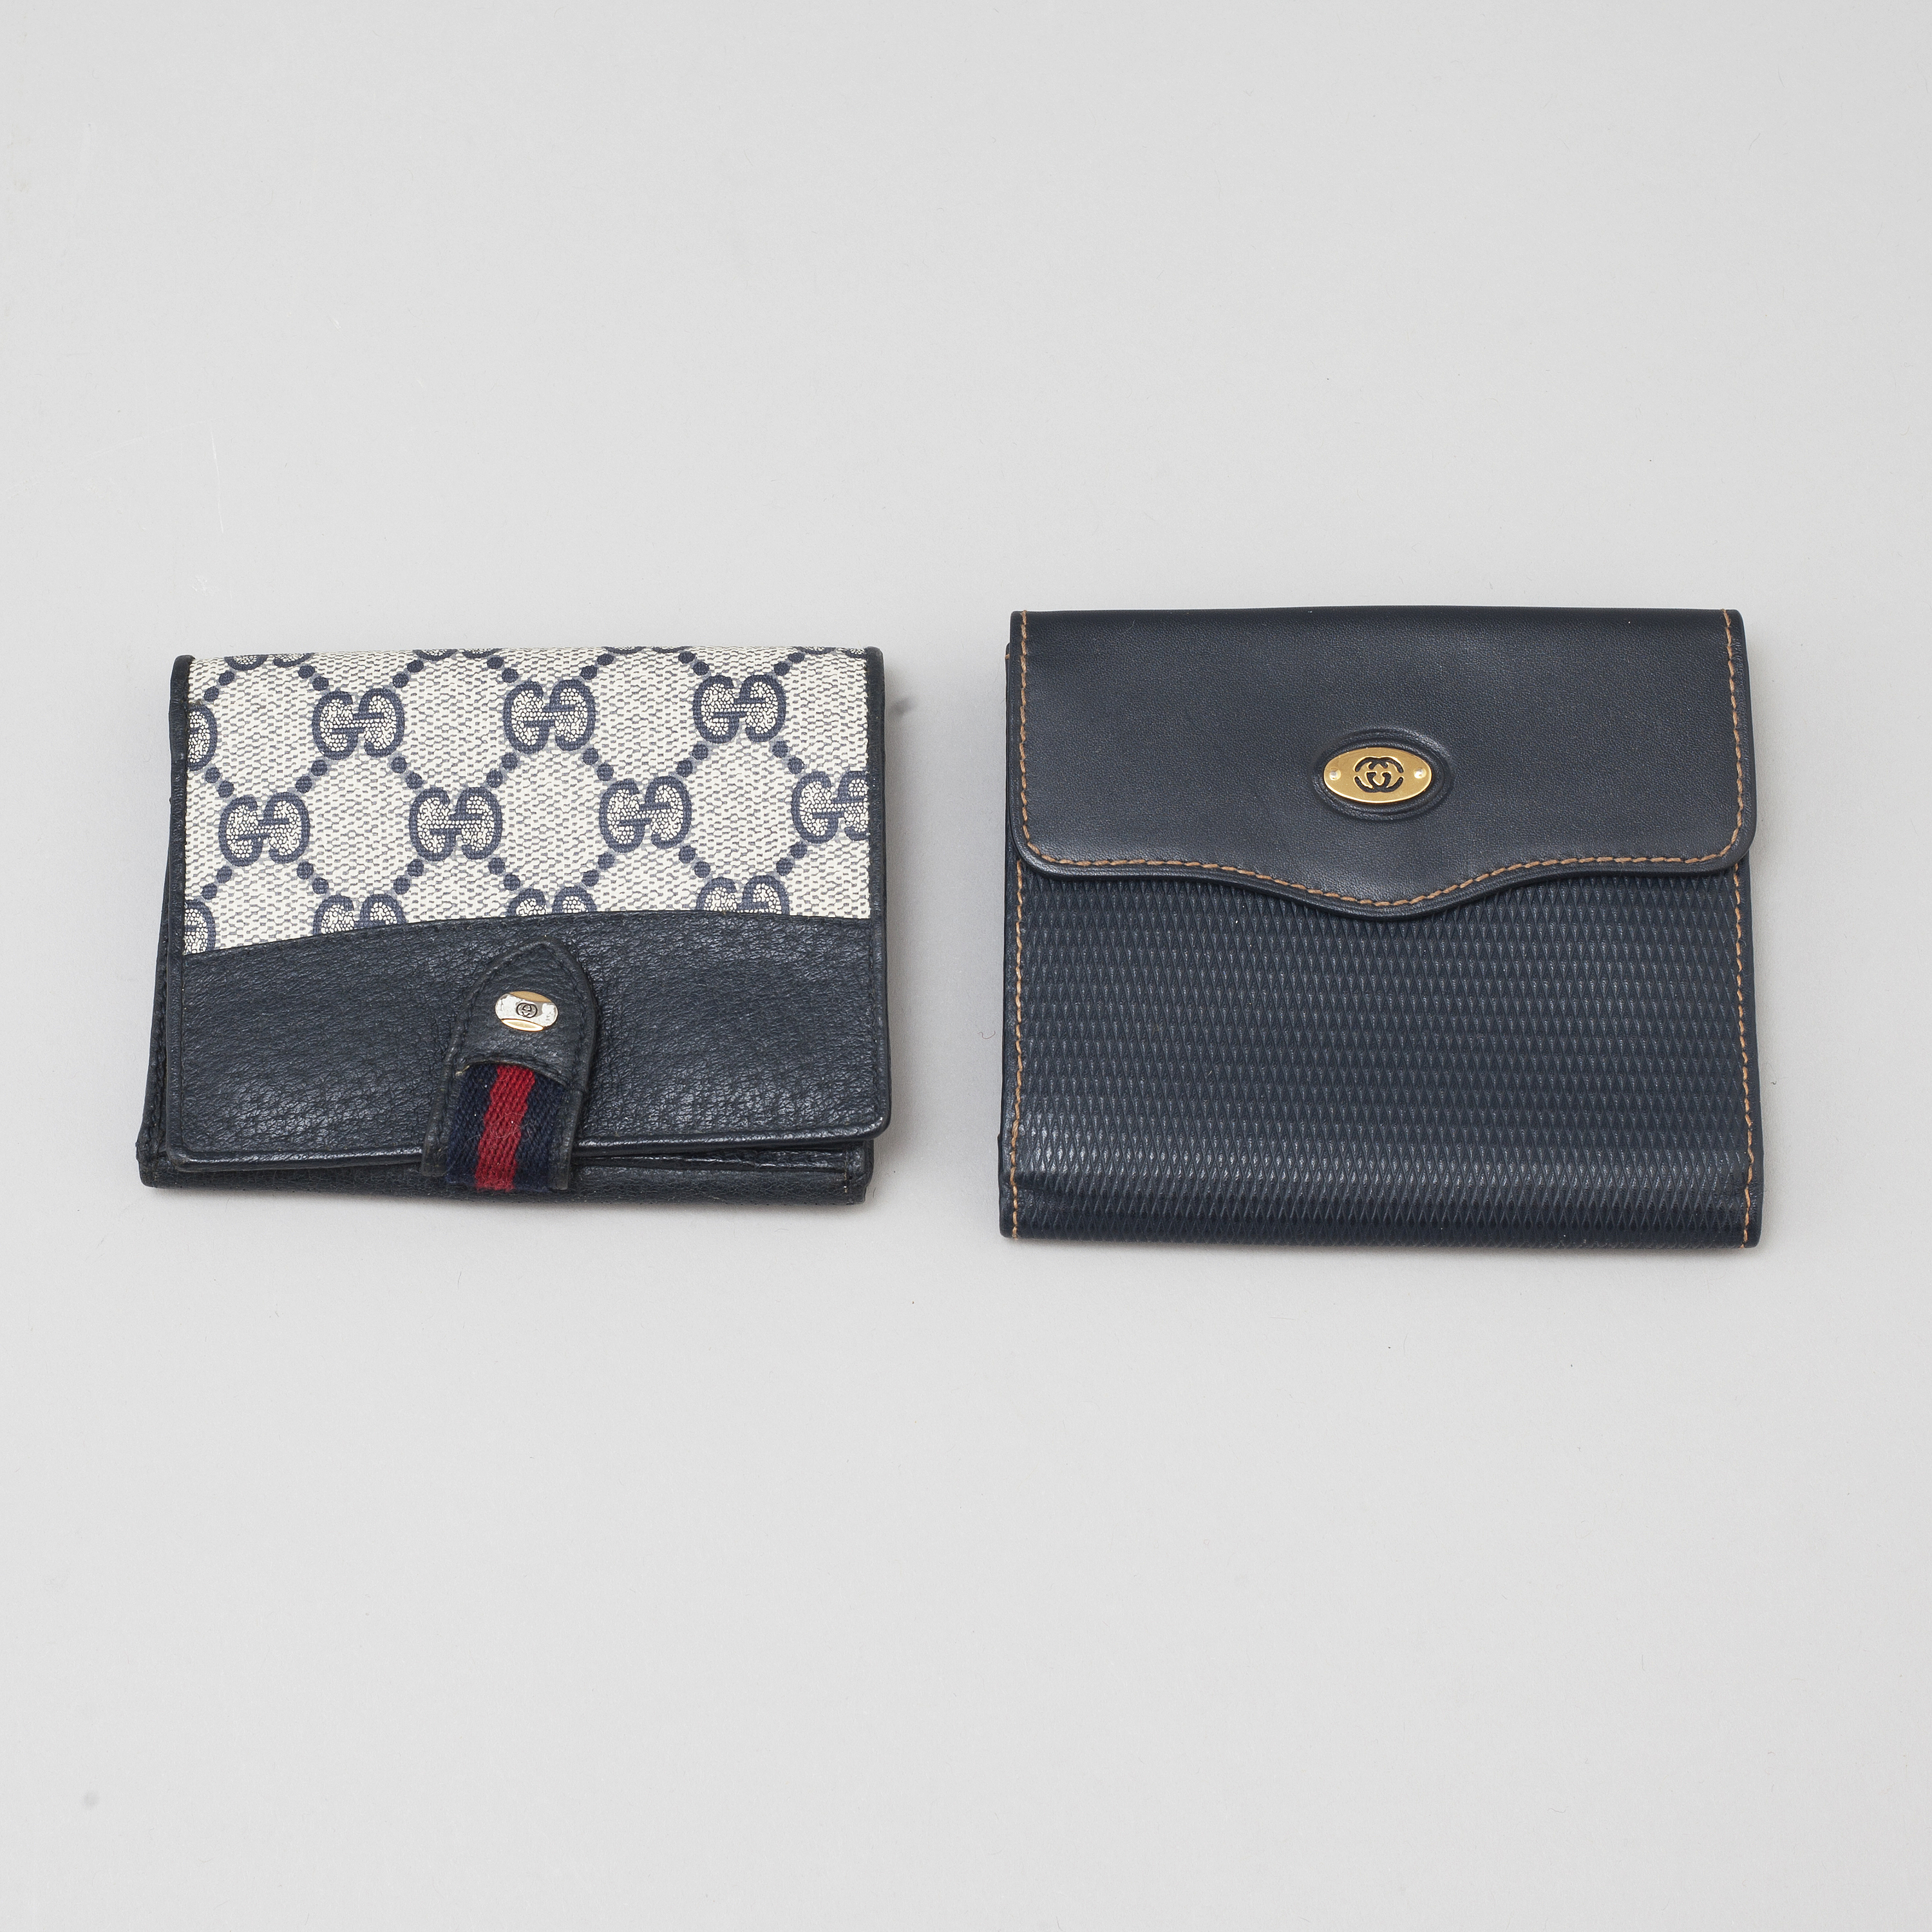 59daf79d95cc GUCCI, two leather wallets. - Bukowskis